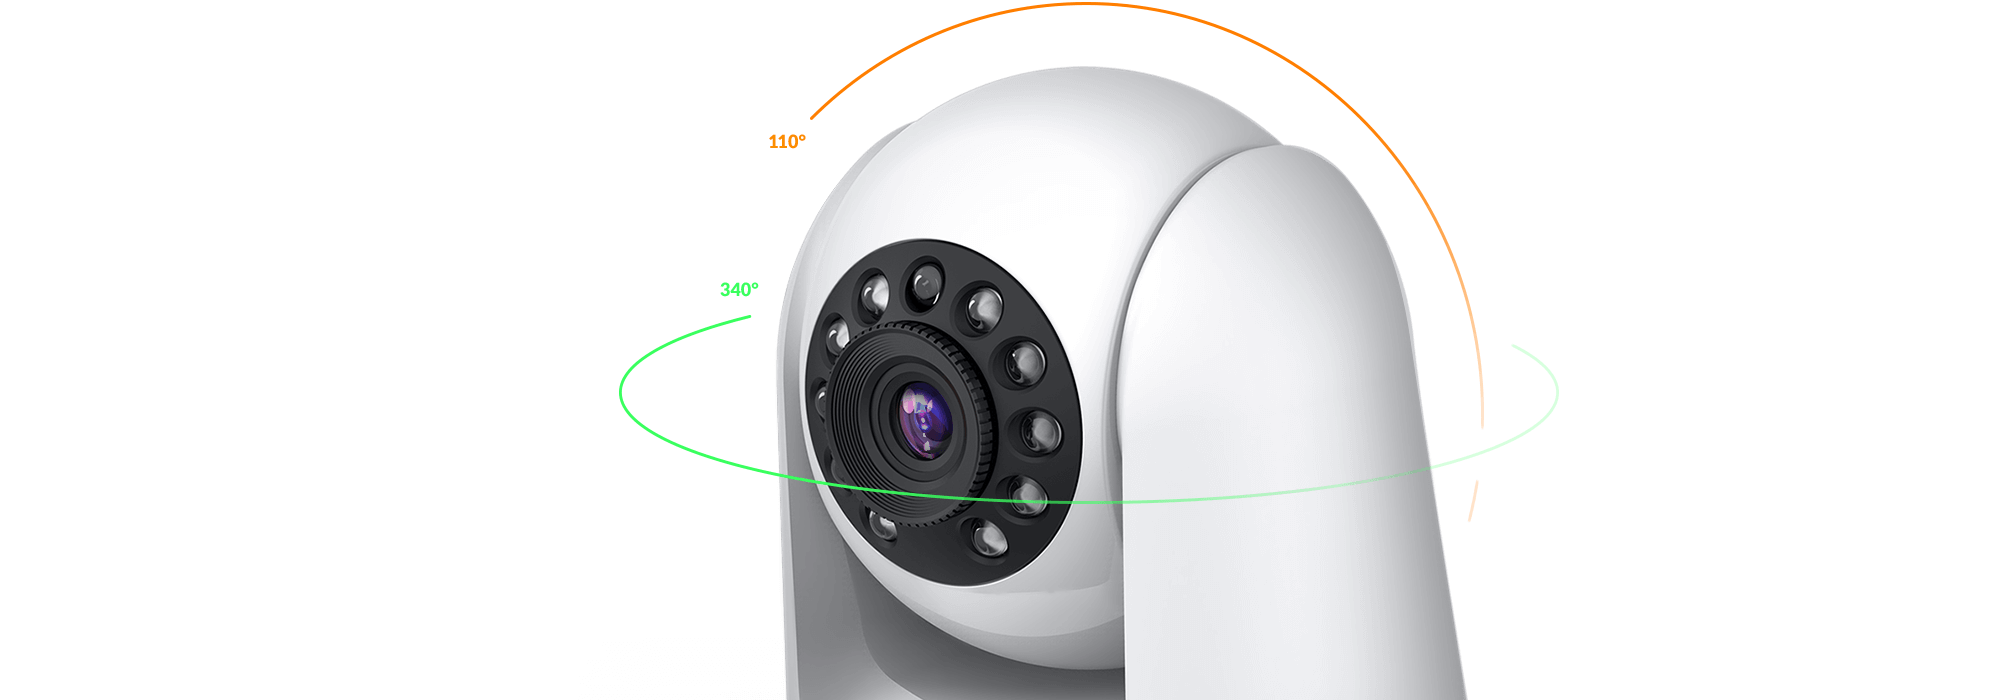 Pan and tilt security camera